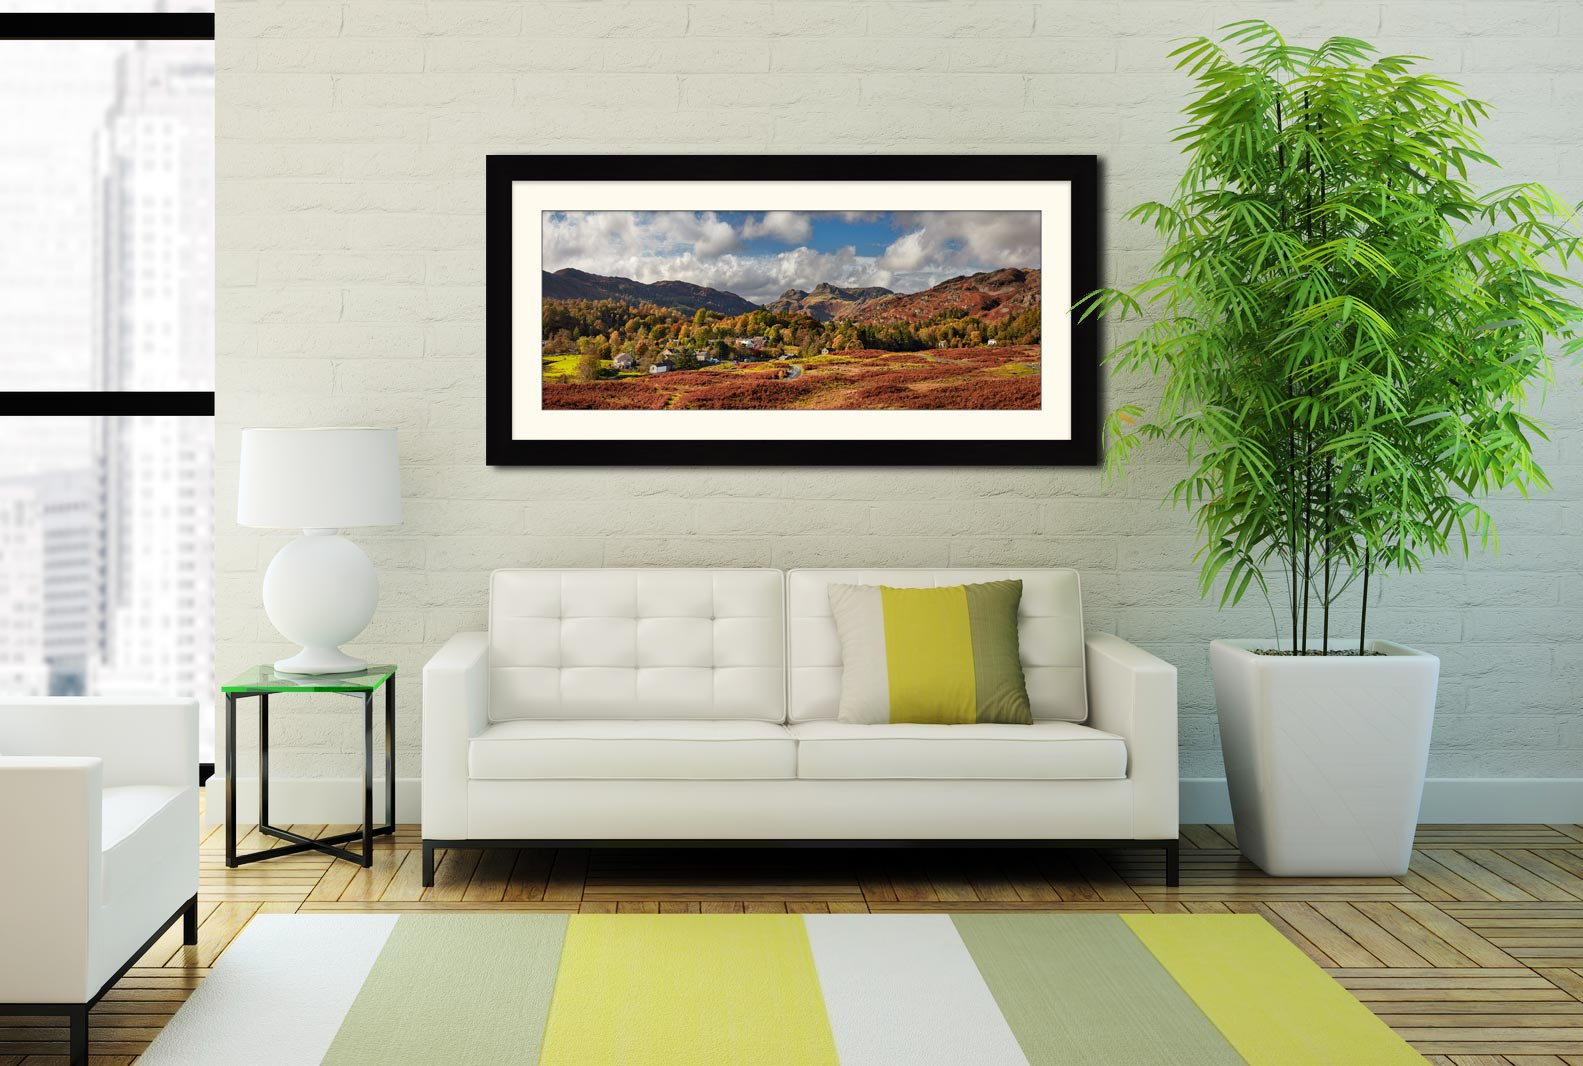 Elterwater Village - Framed Print with Mount on Wall